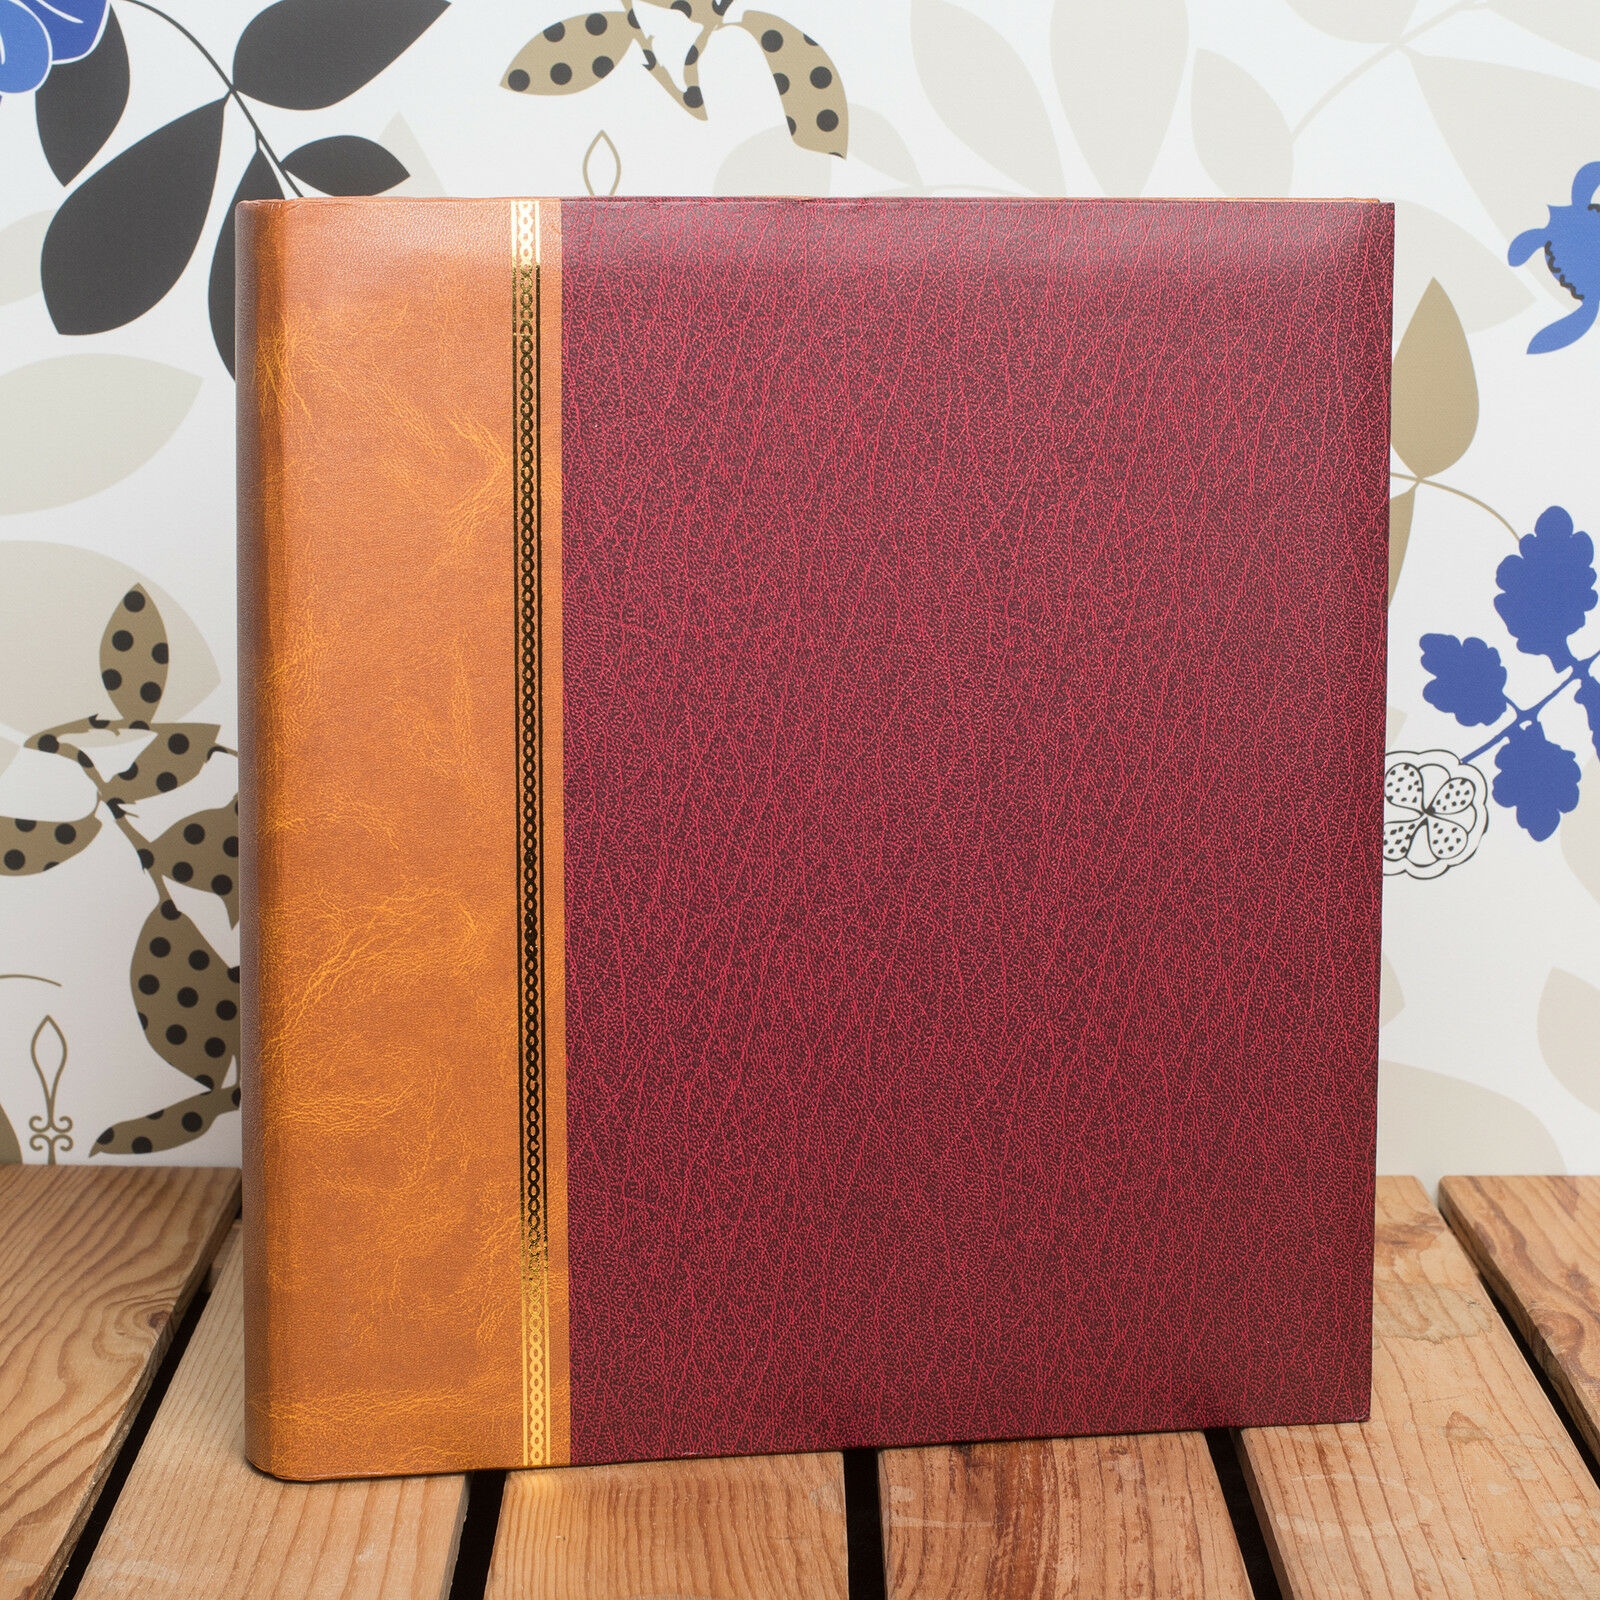 FITS ANY SIZE PHOTO UPTO 12x10 INCH CLASSIC TRADITIONAL ROYAL RED PHOTO ALBUM